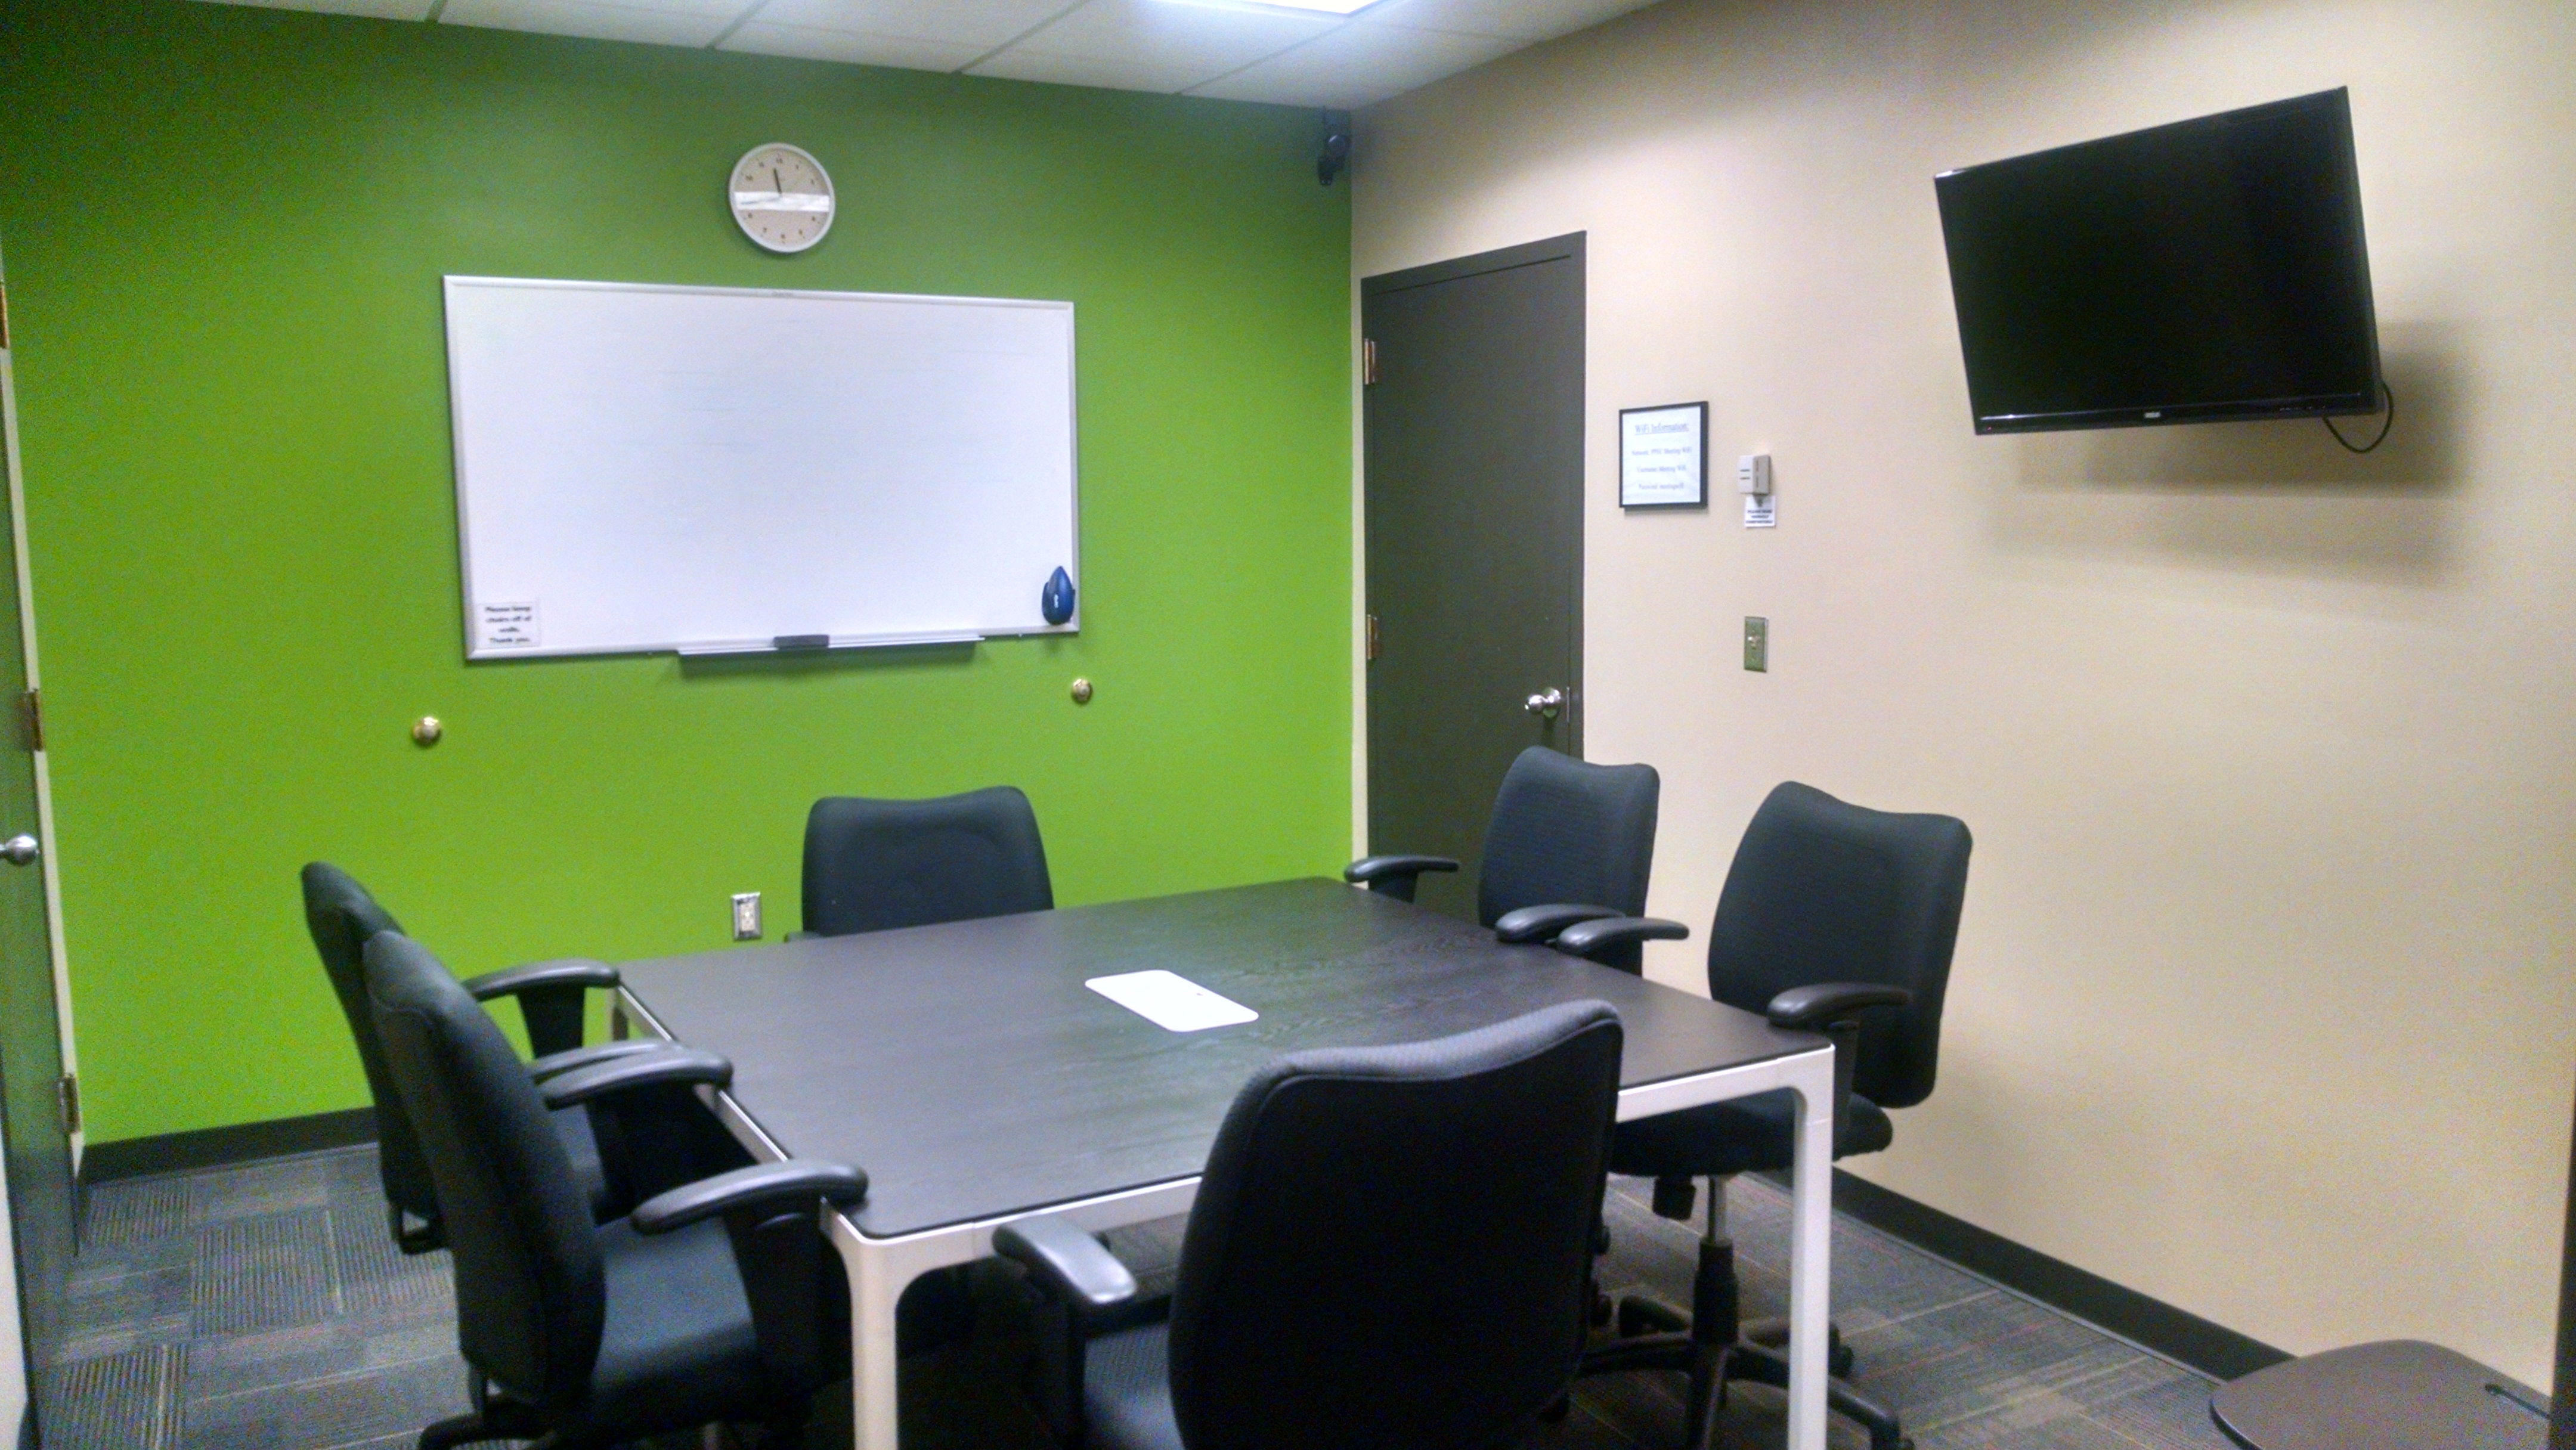 Great Nashville Office Meeting Space Conference Room For Rent   Flexible Offices  @ Perimeter Park | 615.781.4200